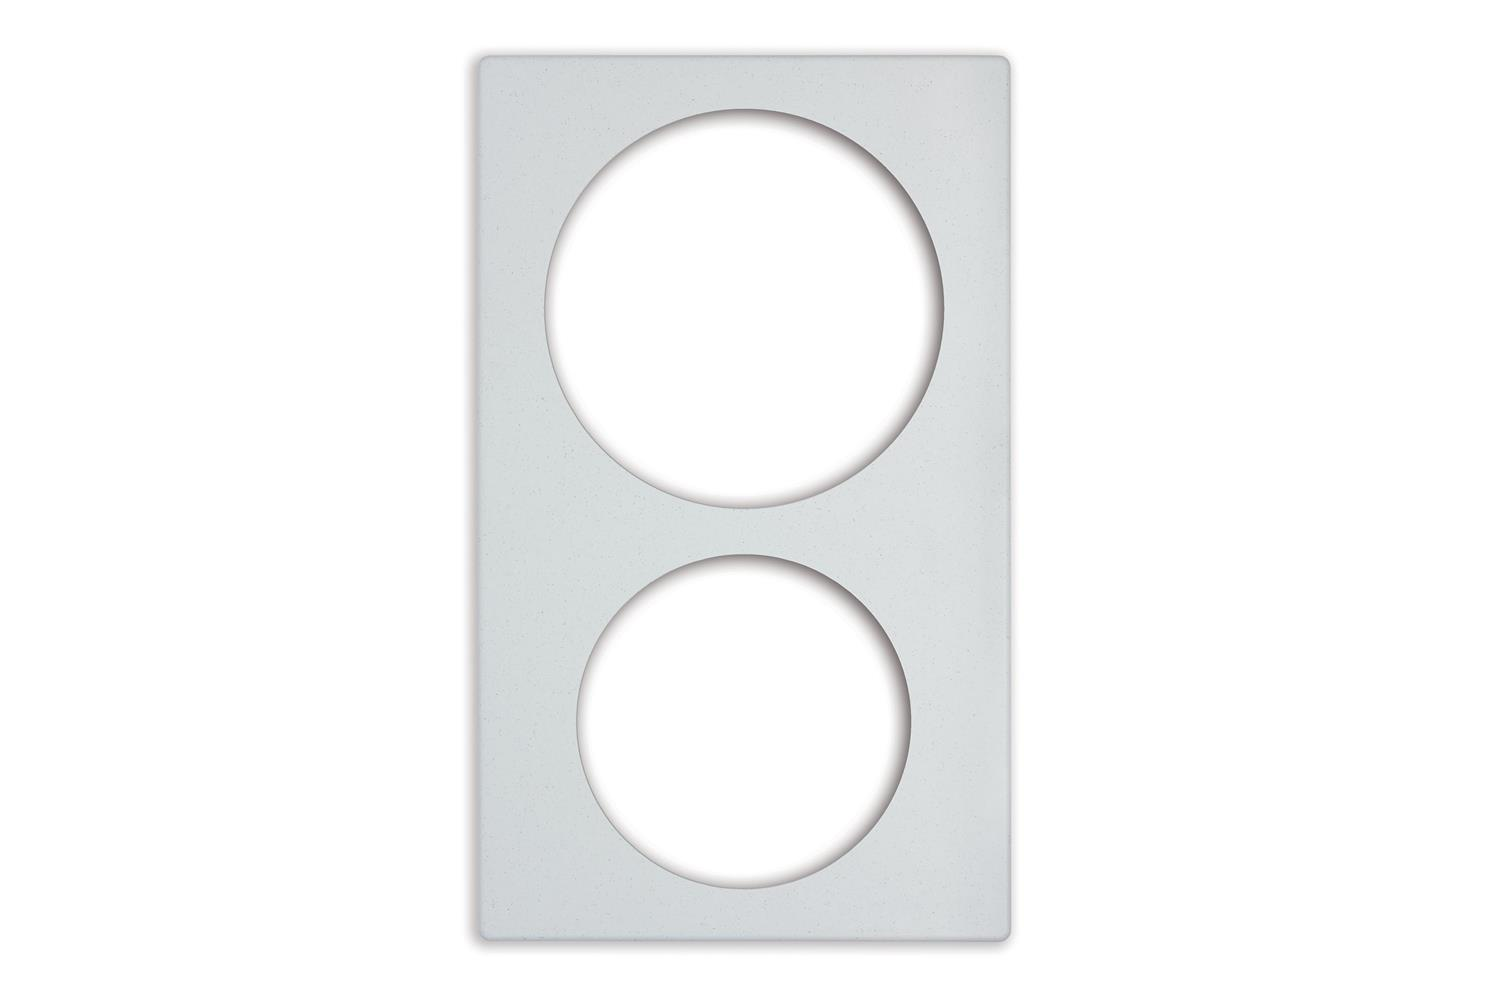 Vollrath 8242020 Miramar Single Size Template, White Stone